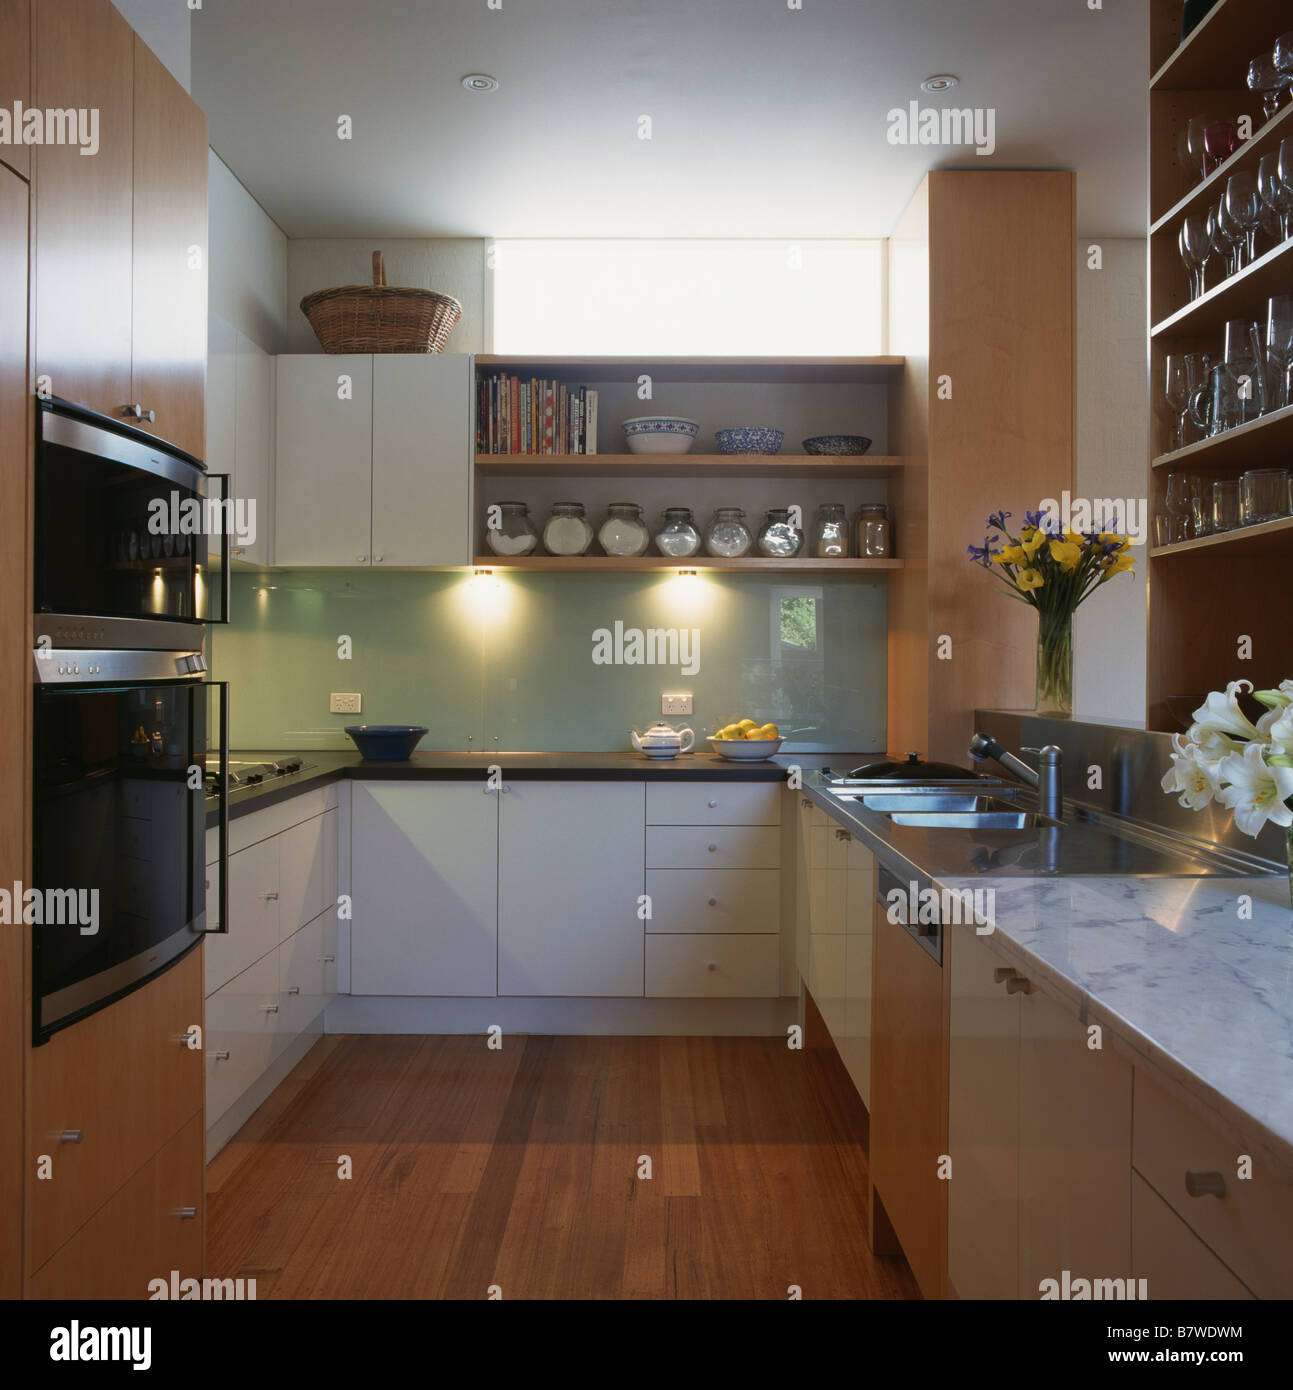 Shelves Above Kitchen Cabinets Downligthing And Shelves Above Glass Splashback In Modern Kitchen